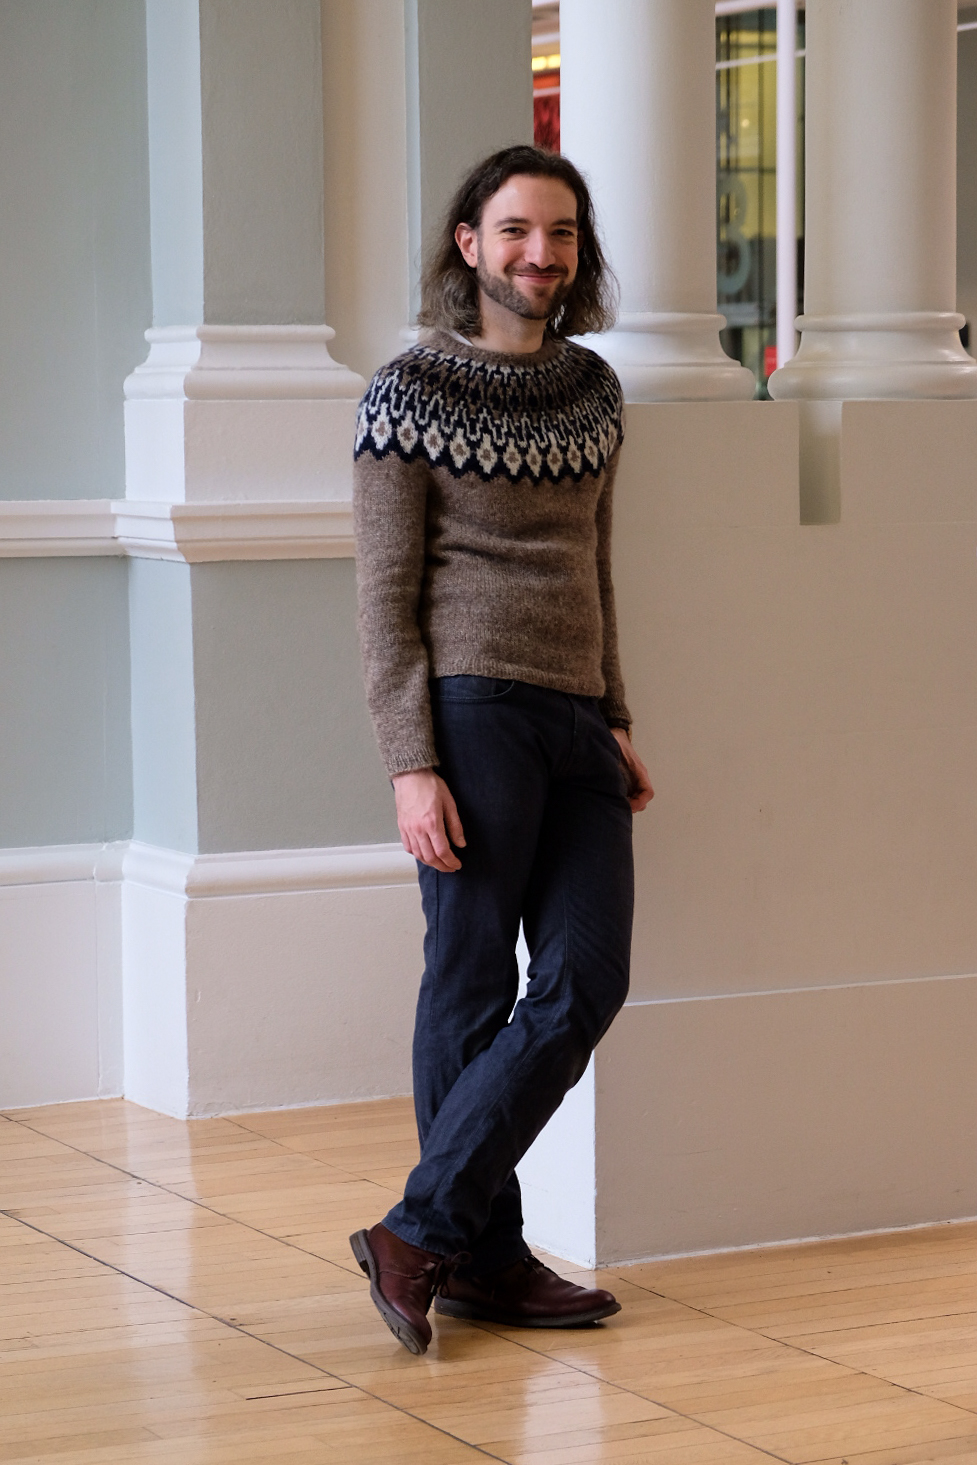 Atlas by Brooklyn Tweed in Oatmeal, Navy and White